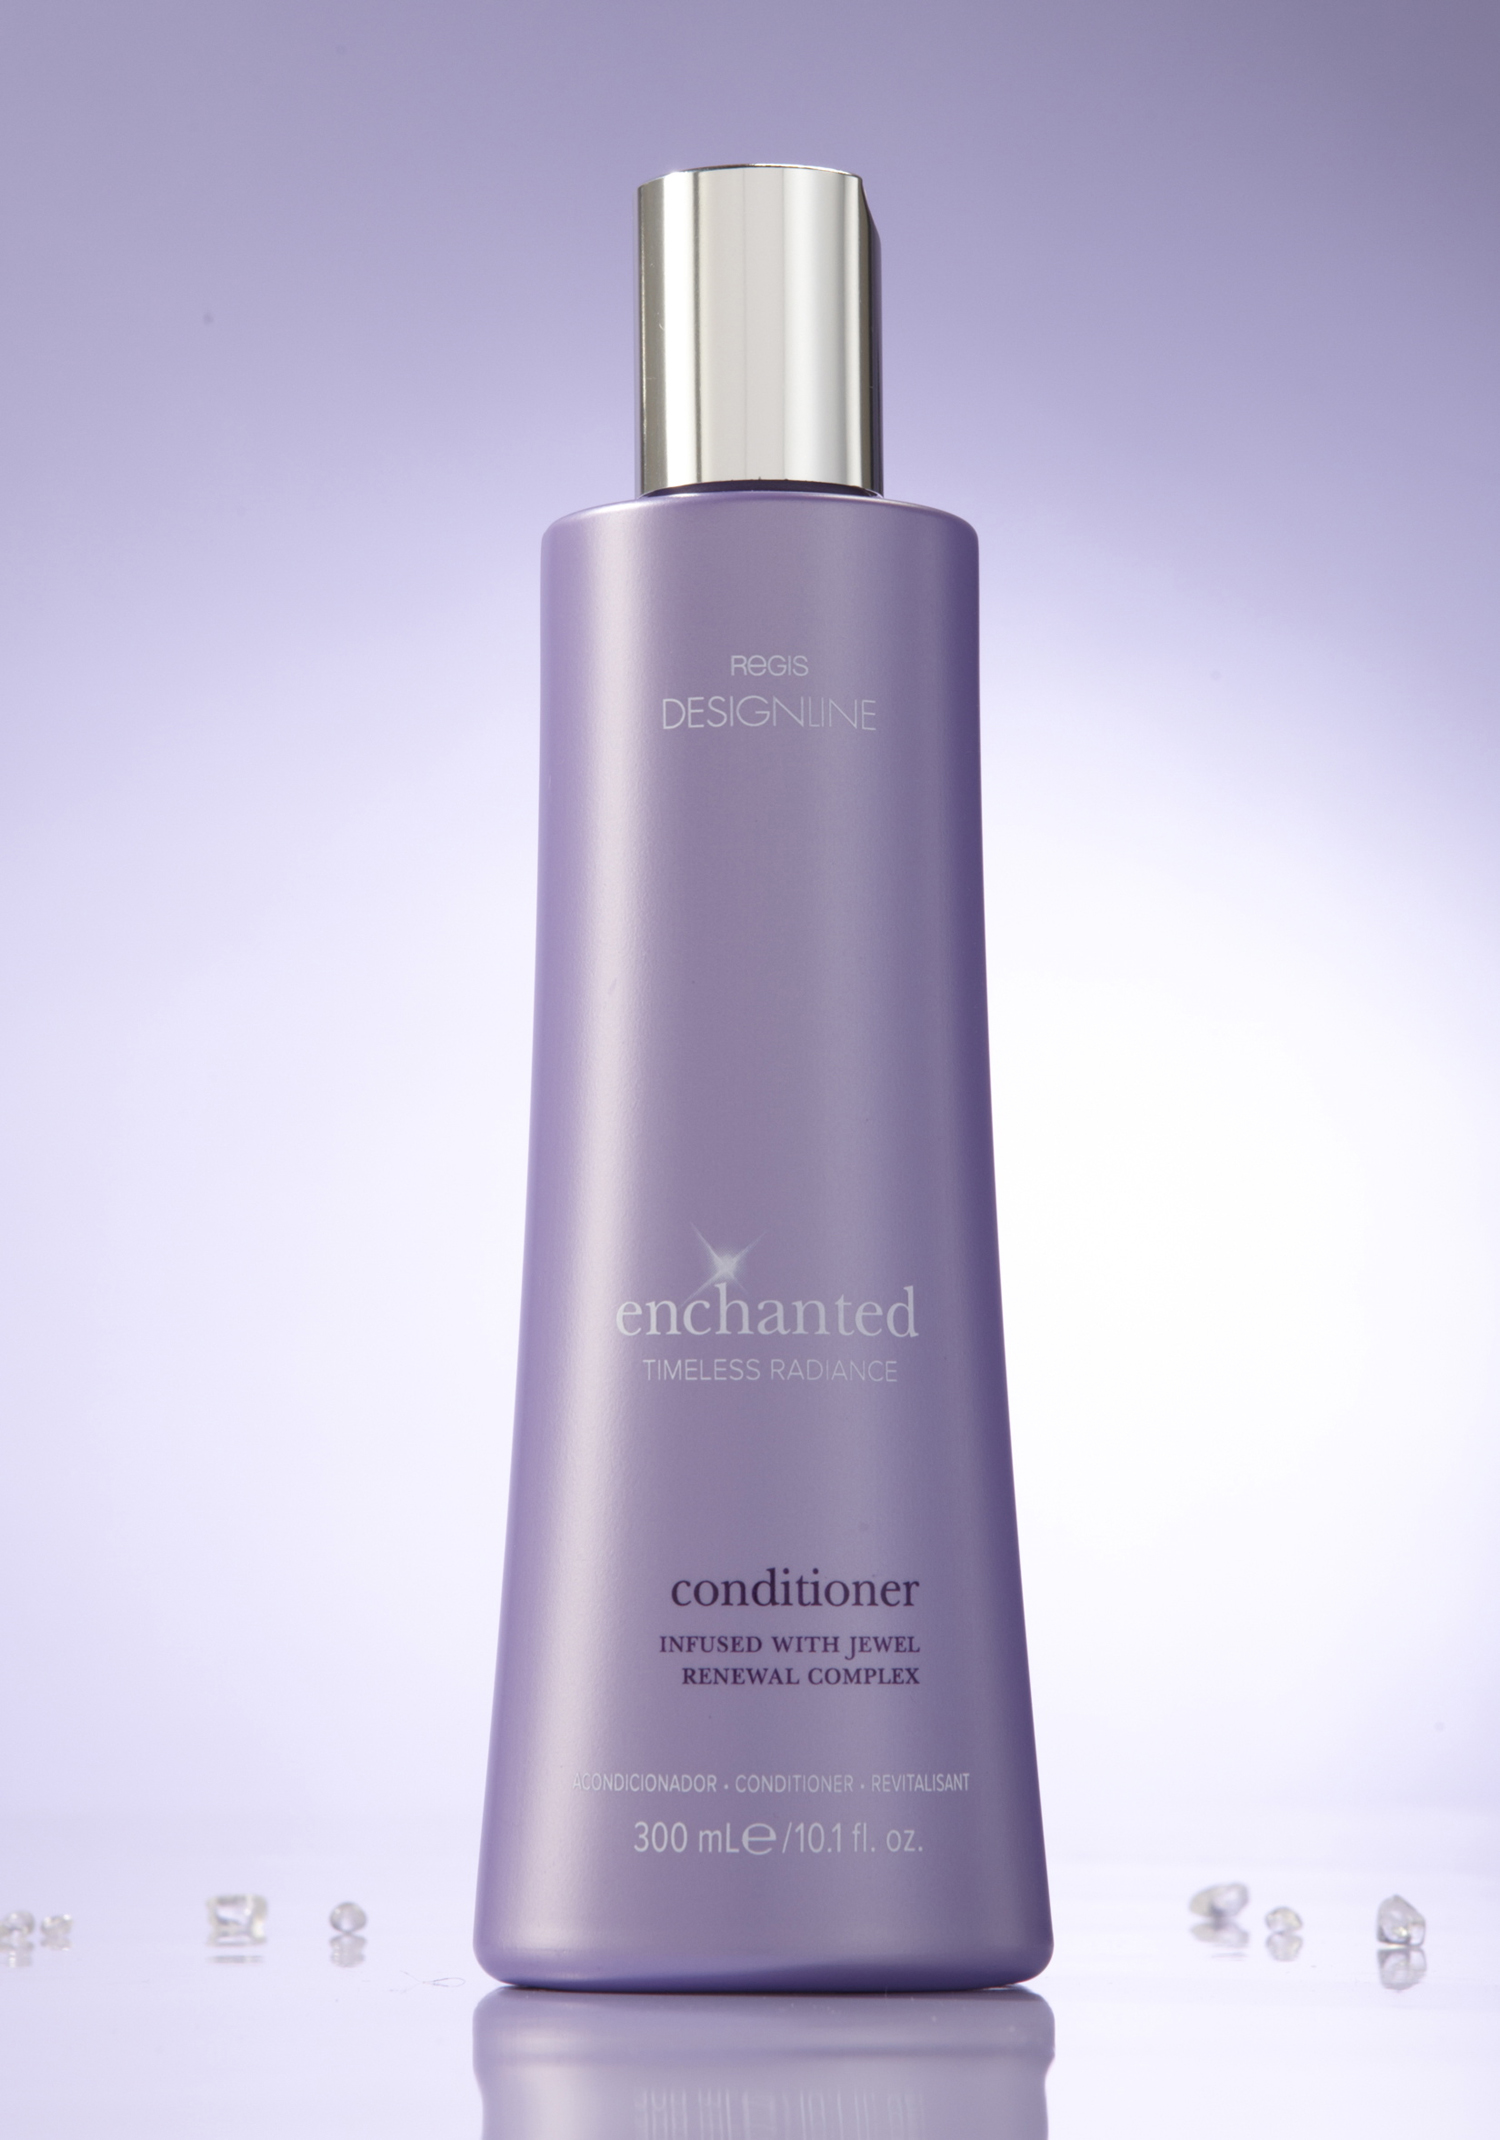 Design Line Enchanted Timeless Radiance Conditioner